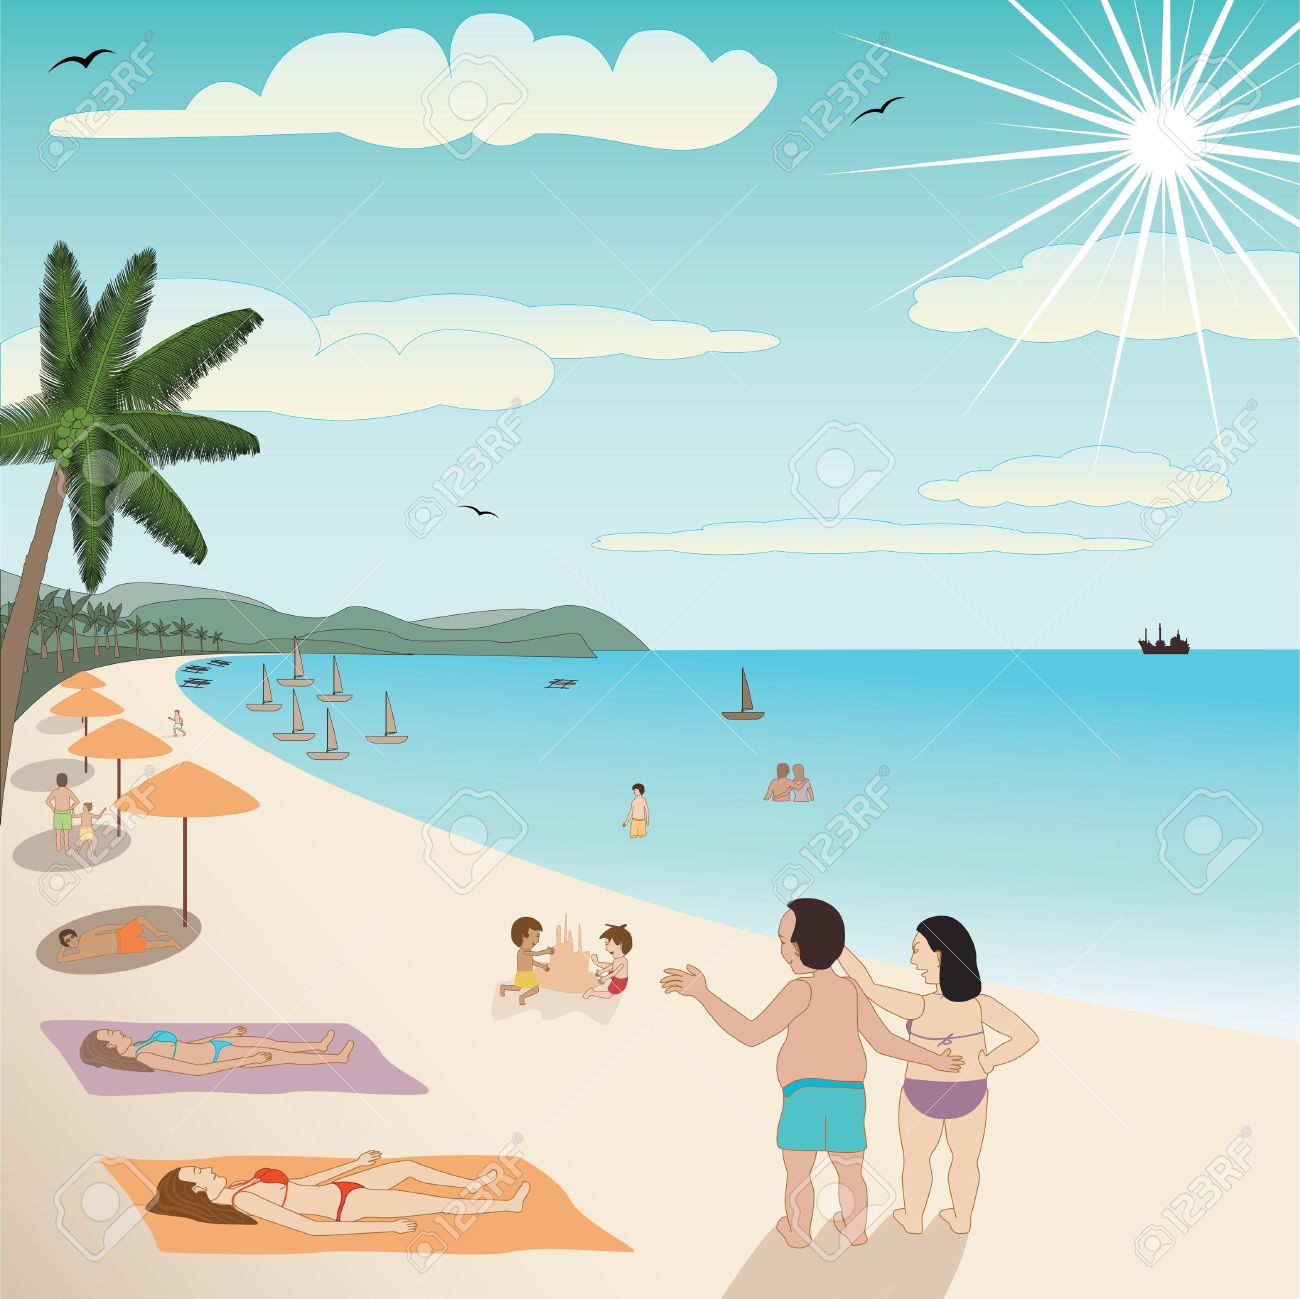 People at the beach clipart banner transparent download Free Resorts Cliparts, Download Free Clip Art, Free Clip Art ... banner transparent download